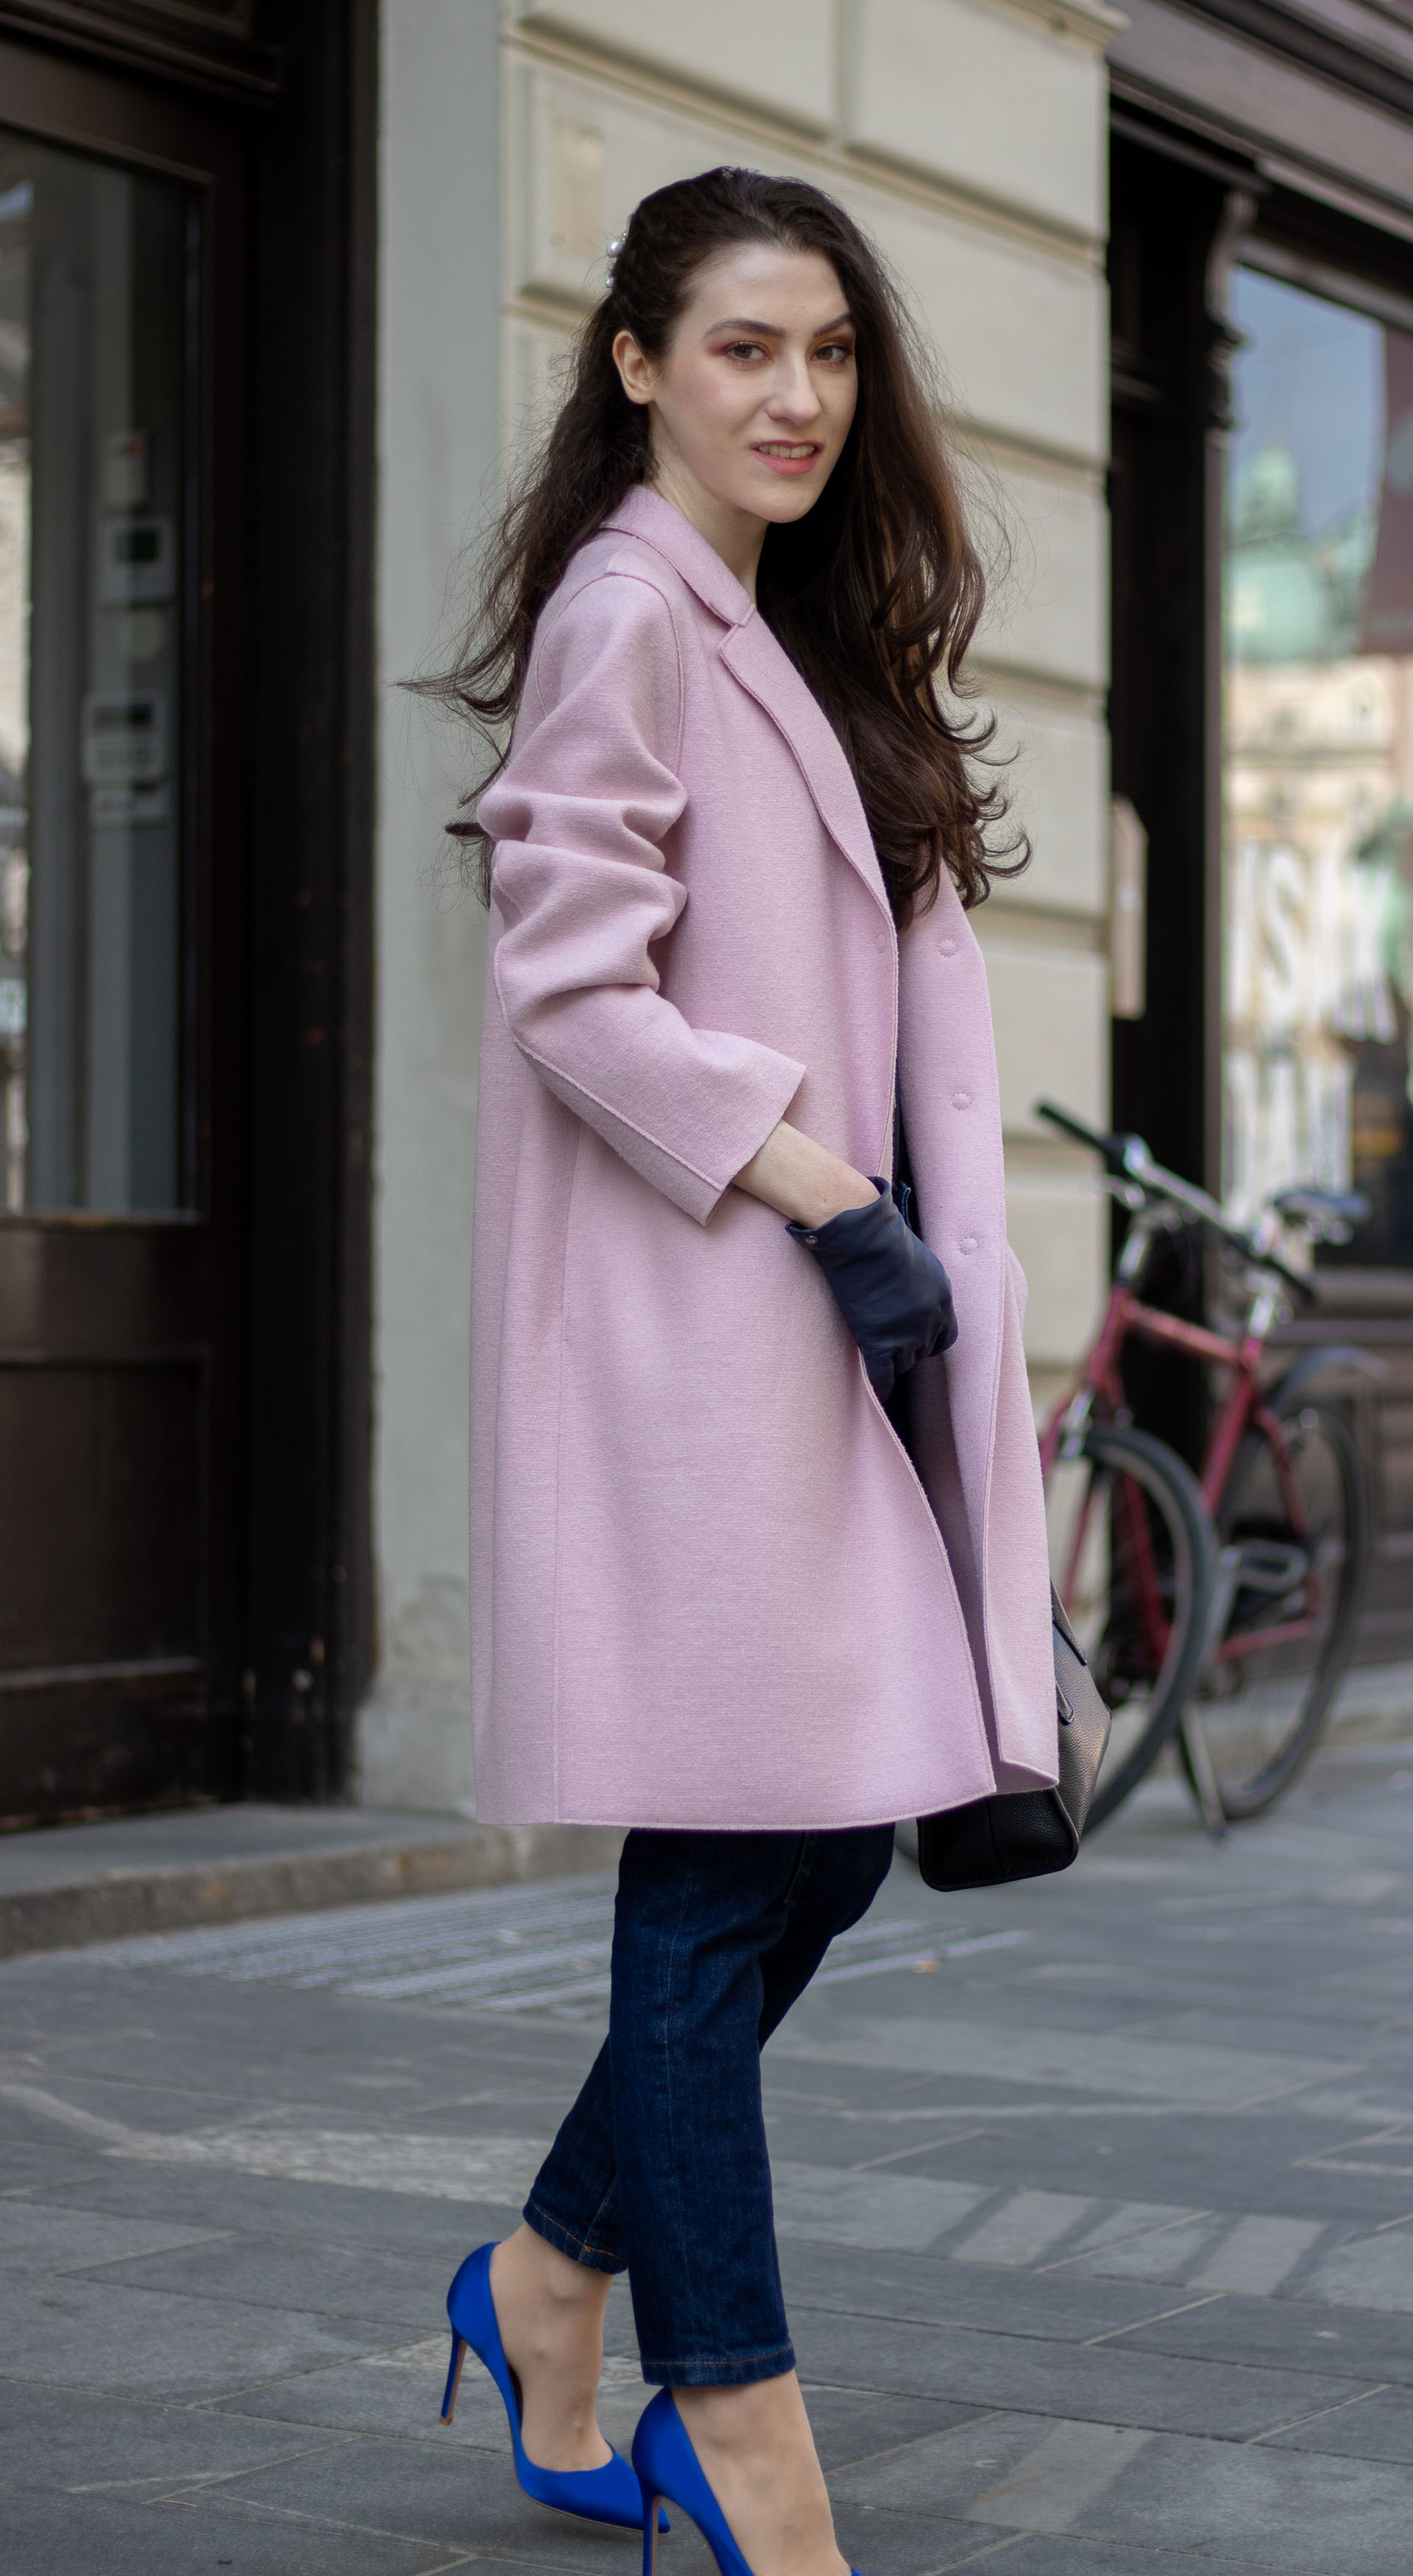 Must follow Fashion Blogger Veronika Lipar of Brunette from Wall Street dressed in oversize pink Harris Wharf London coat A.P.C. Paris dark blue denim jeans Gianvito Rossi blue court shoes black top handle bag Forzieri blue leather gloves pearl hairpin standing on the street